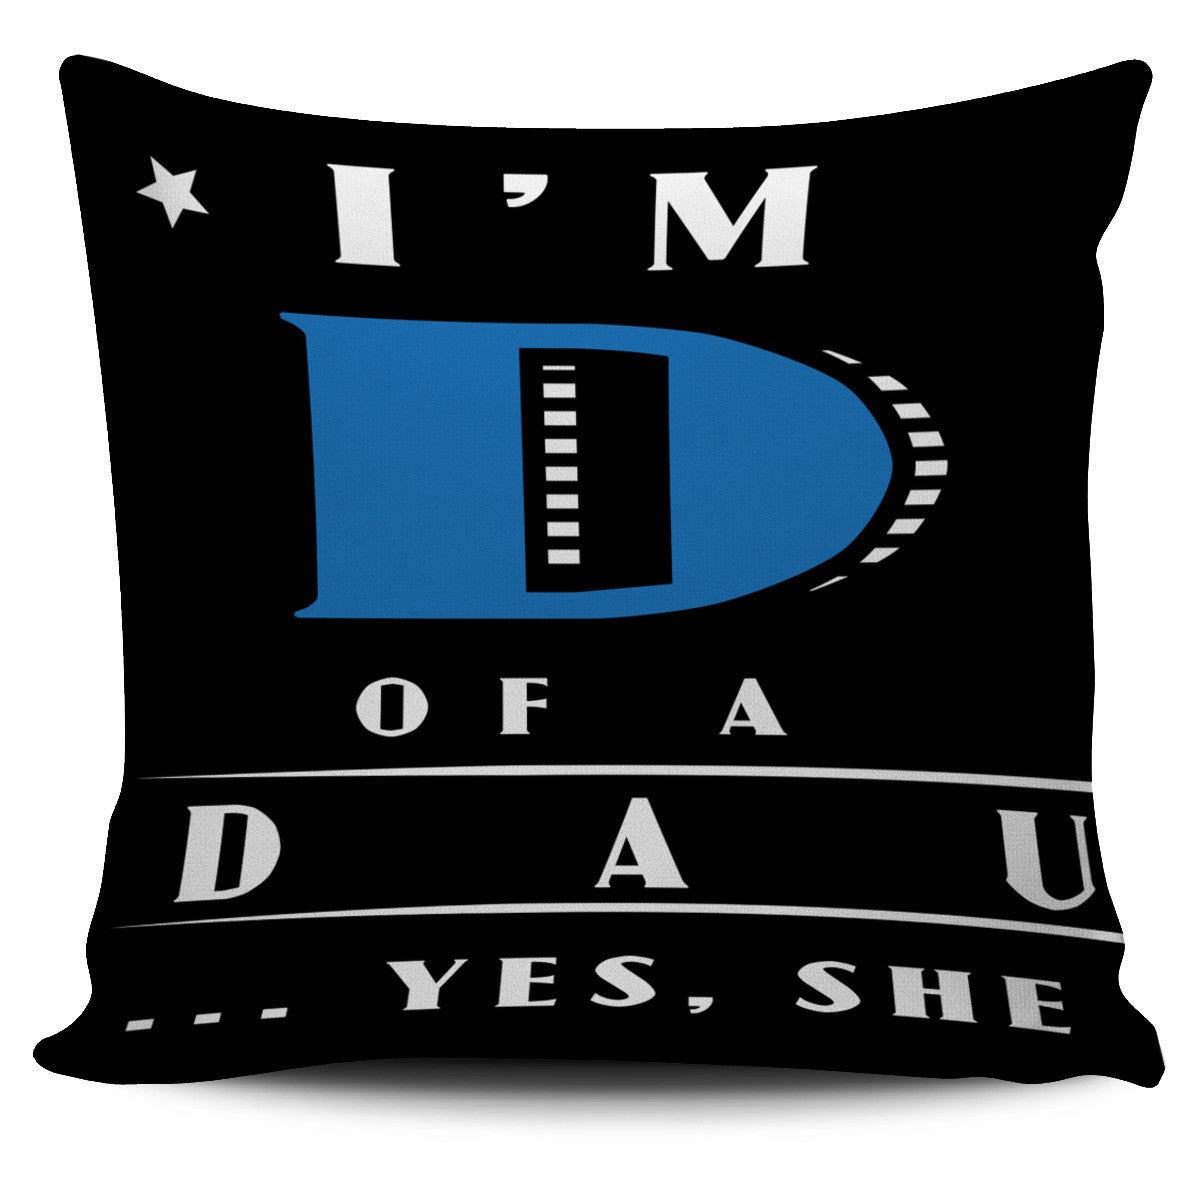 Proud Dad Awesome Daughter Pillow Covers